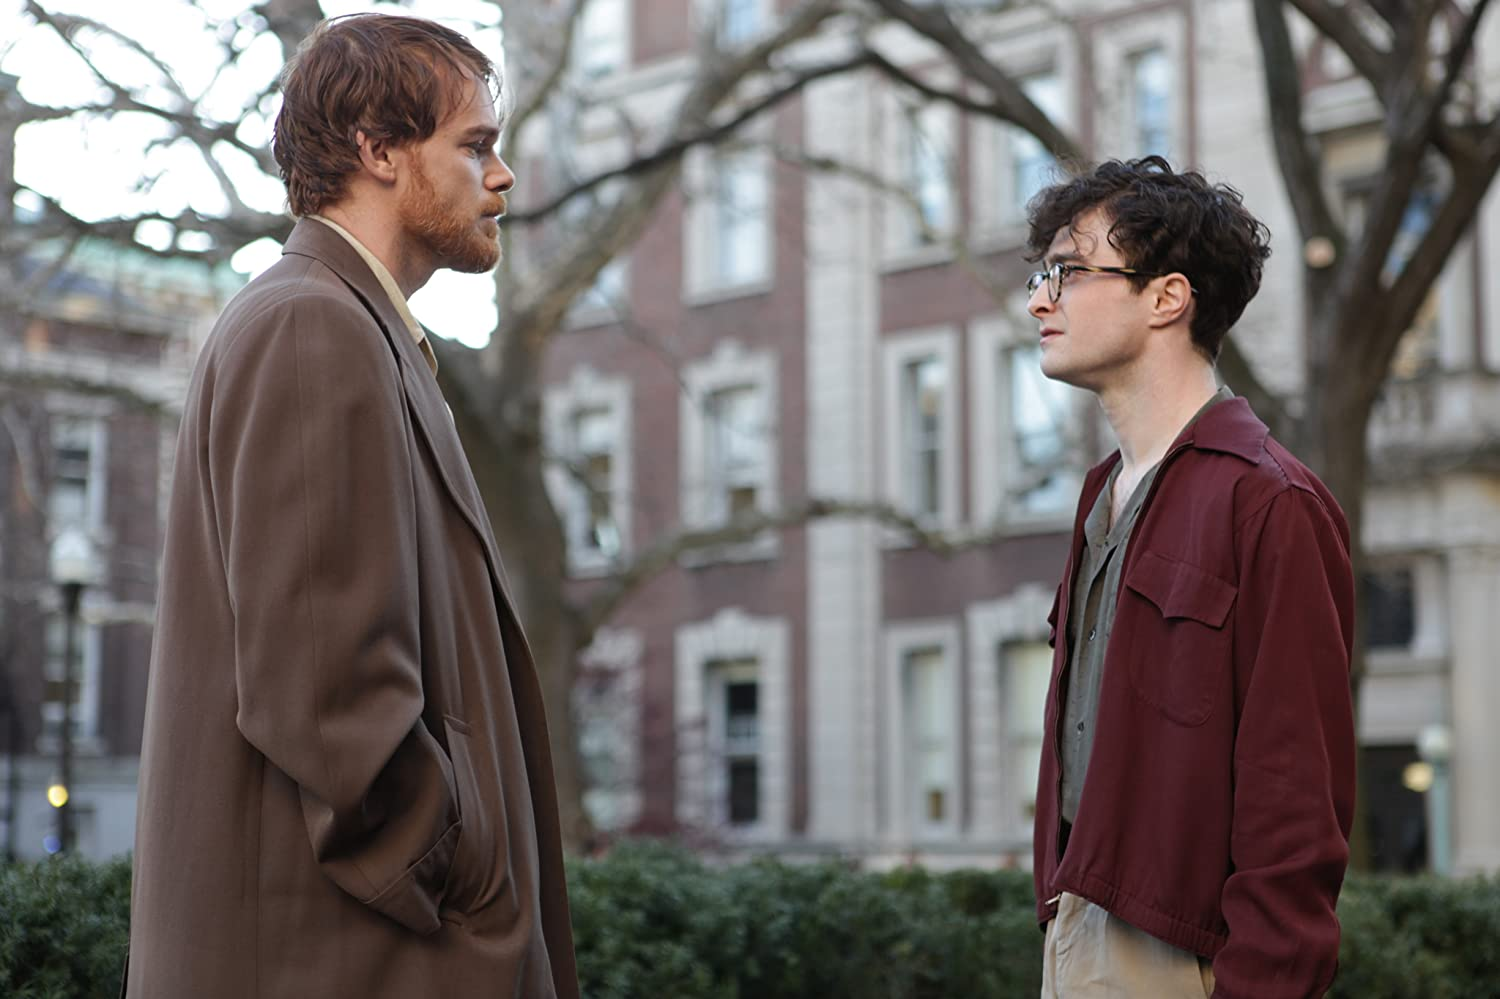 Michael C. Hall and Daniel Radcliffe in Kill Your Darlings (2013)